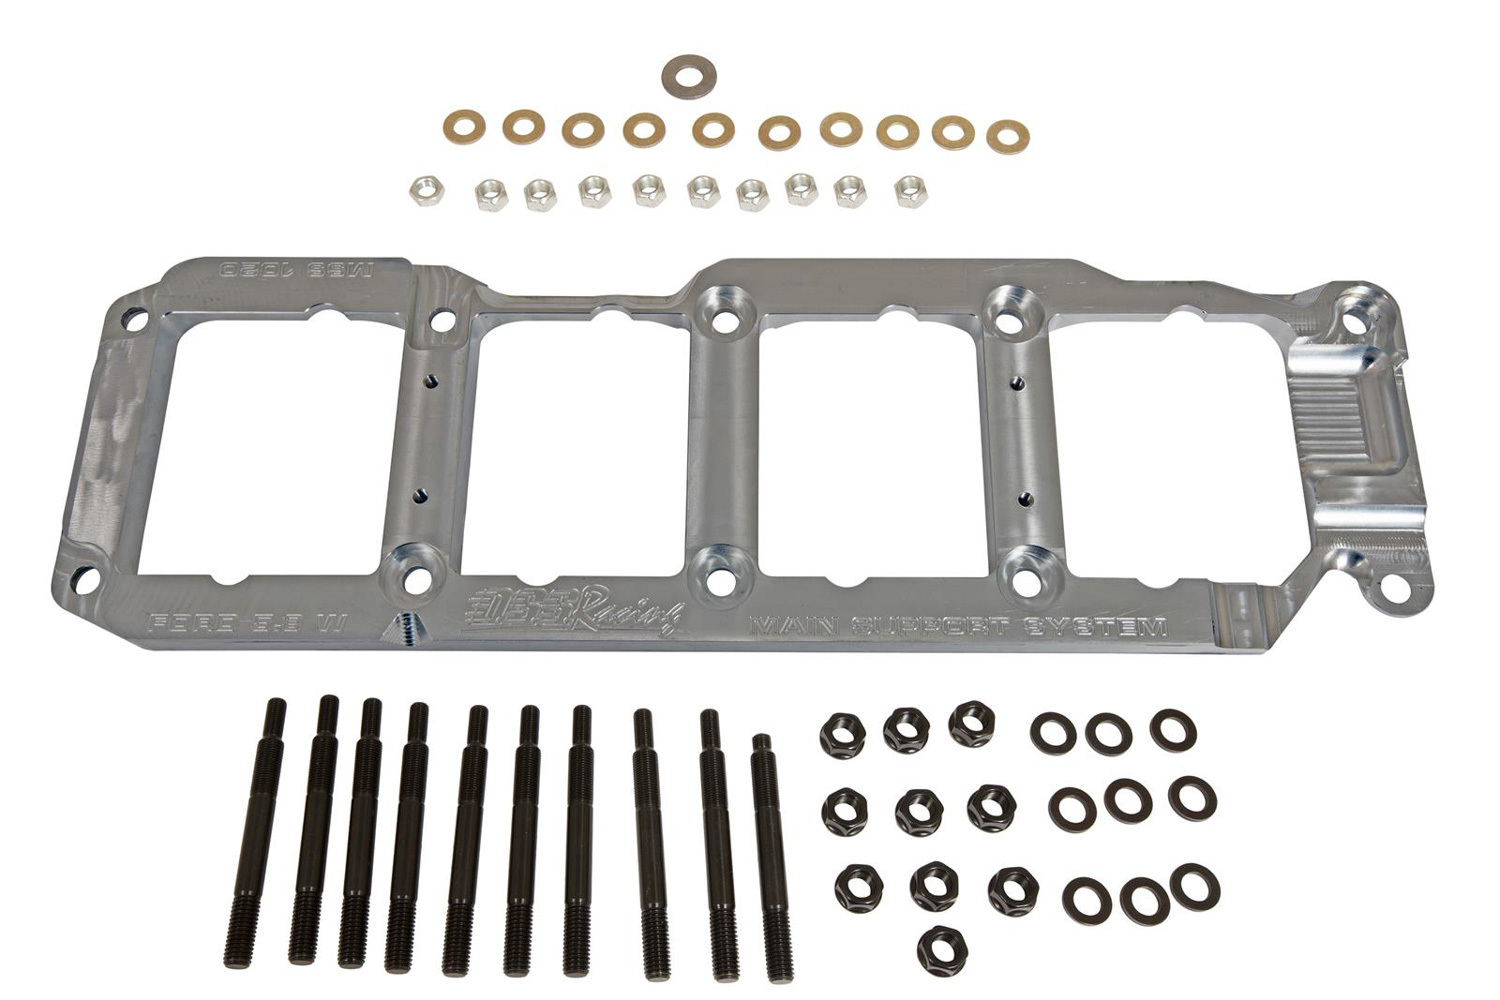 DSS Racing MSS-1020 Main Cap Girdle, 3/4 in Thick, Hardware Included, Billet Aluminum, Natural, Small Block Ford, Kit